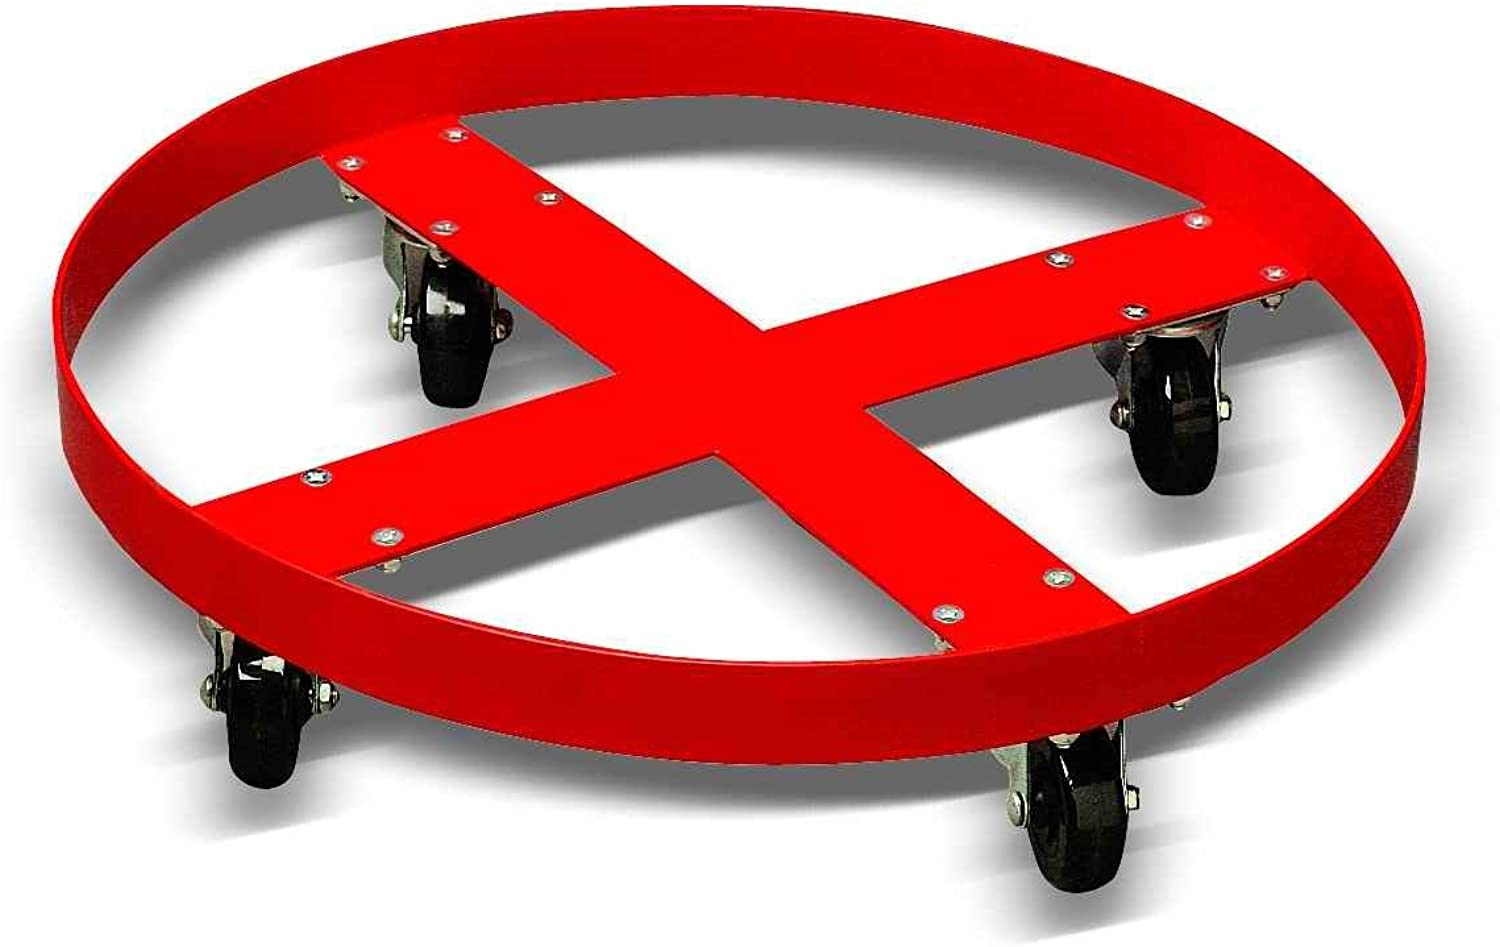 Giant Move CB-H20 Steel Drum Dolly for 55 Gallon Drum, 900 lbs Capacity, 24  Diameter x 5-1 2  Height, Red